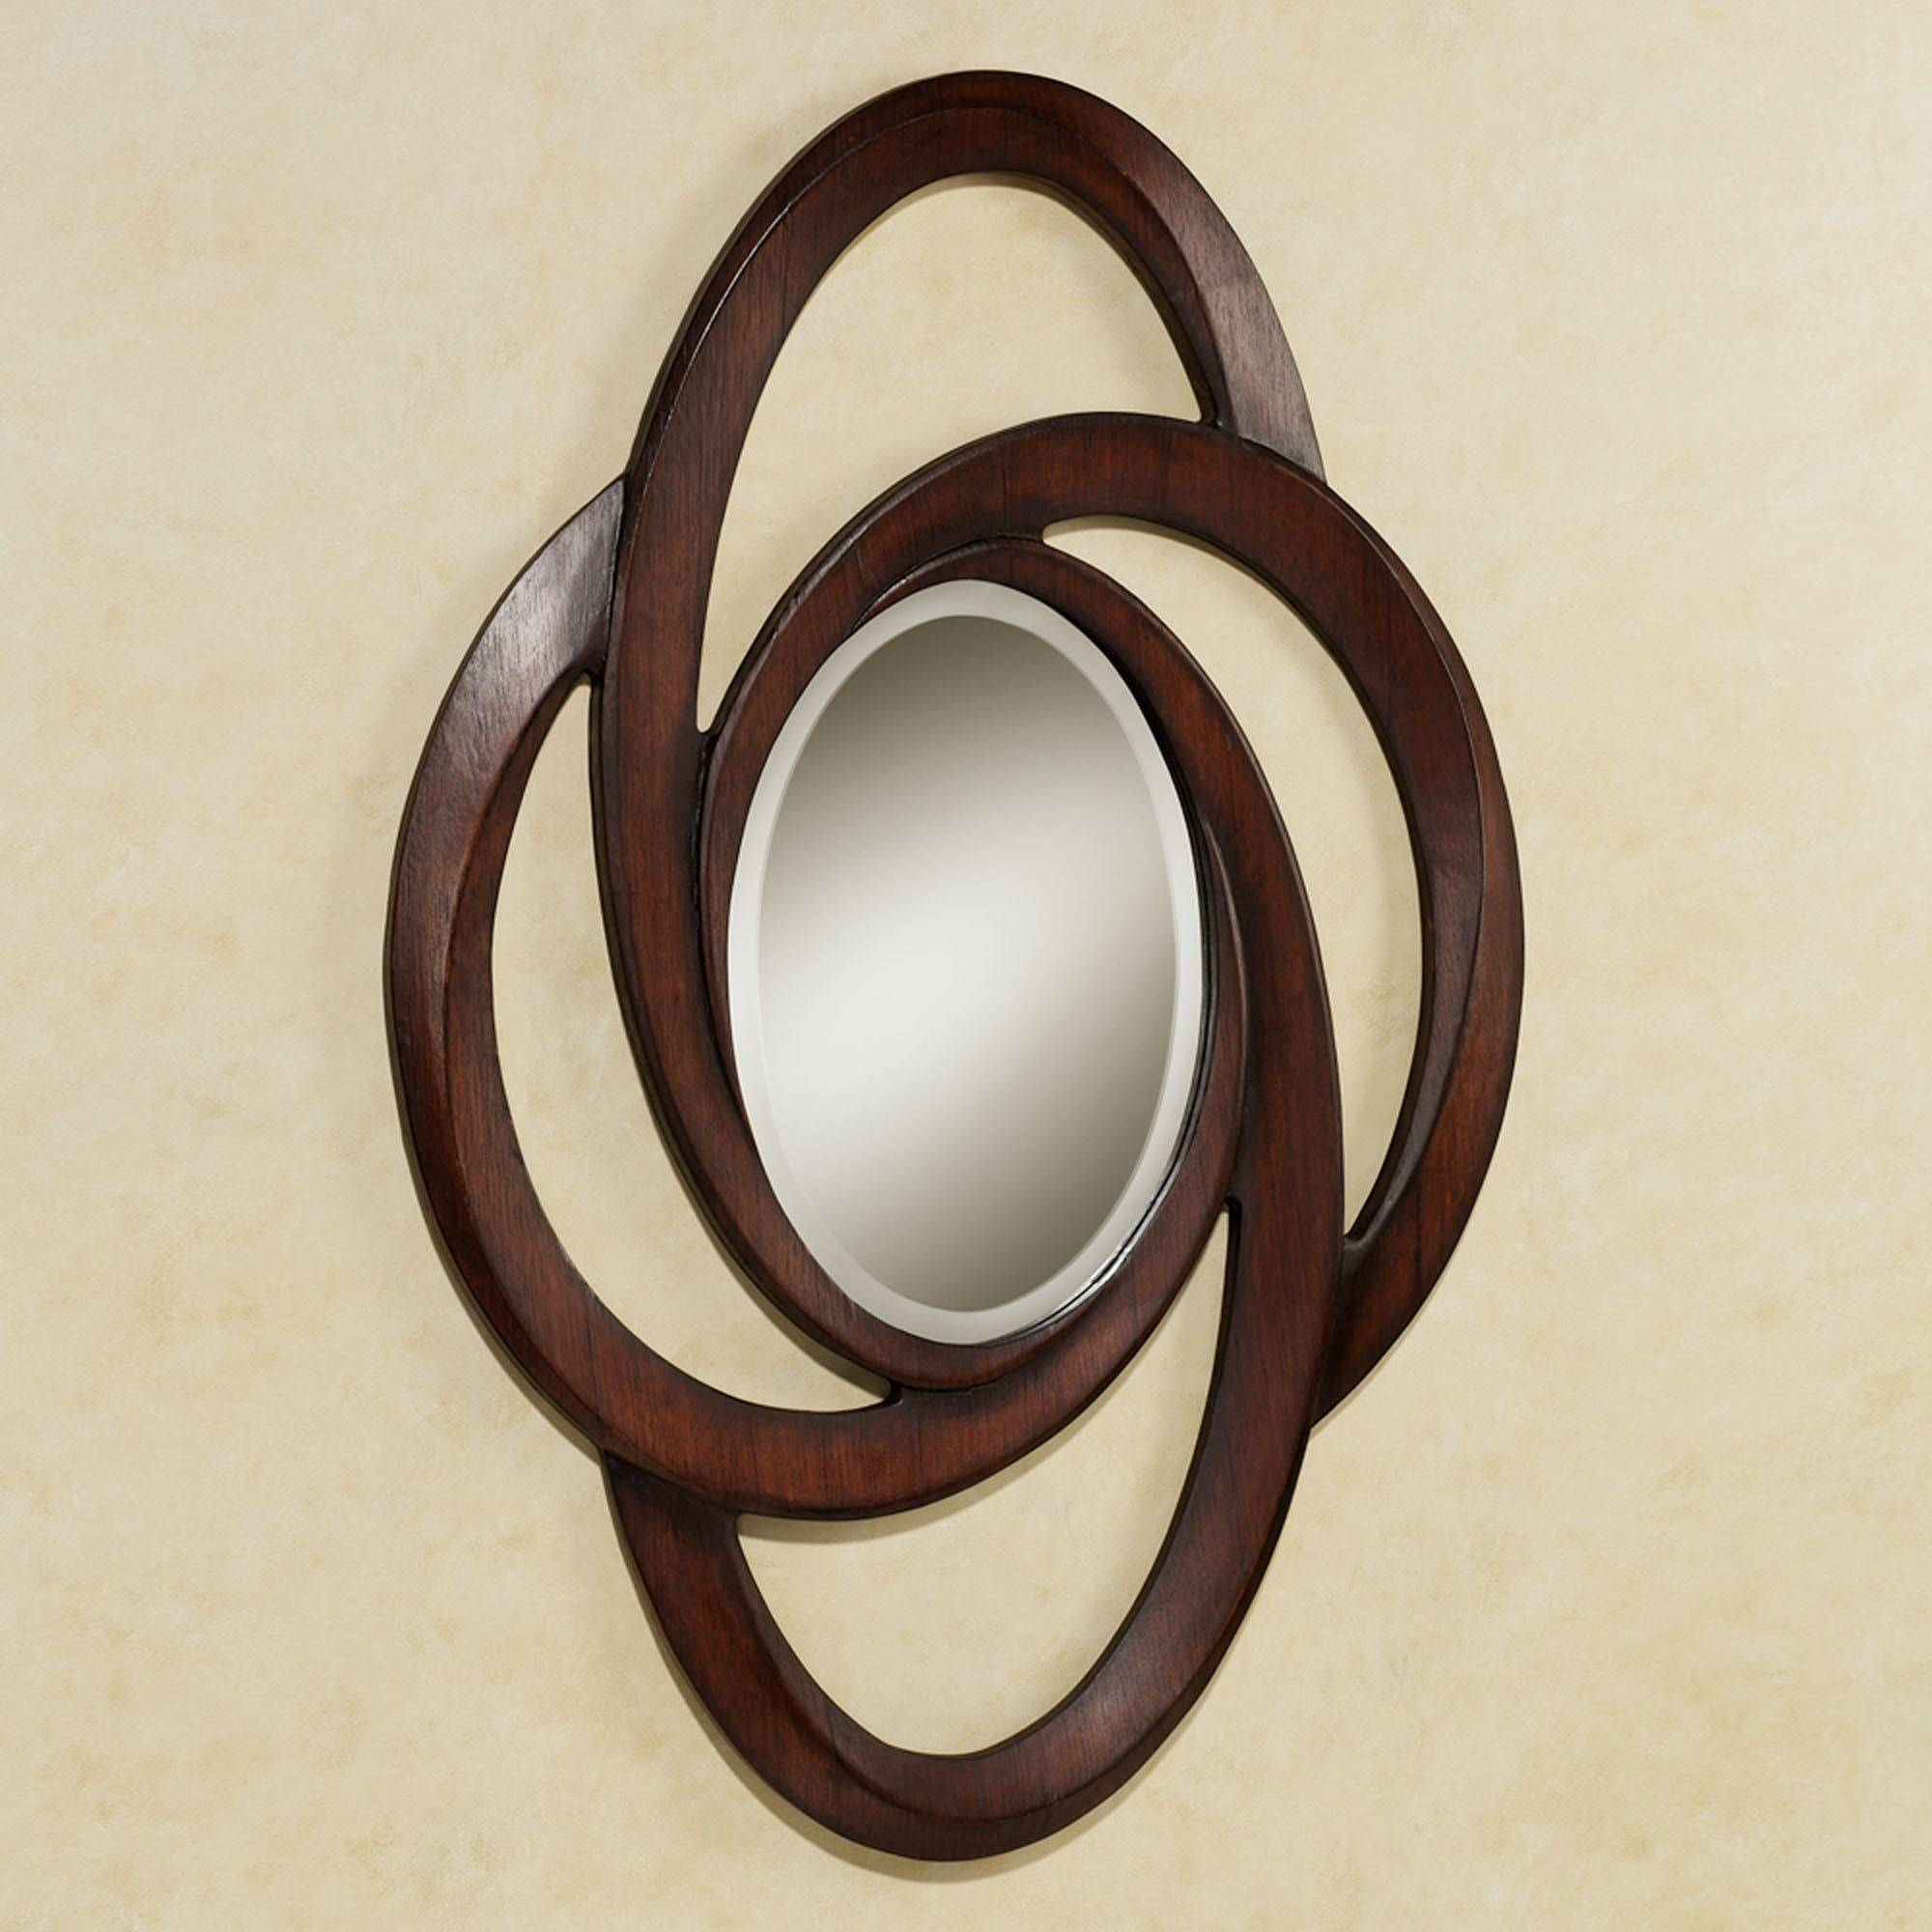 Oval Wall Mirrors With Regard To Oval Wall Mirrors (View 19 of 25)